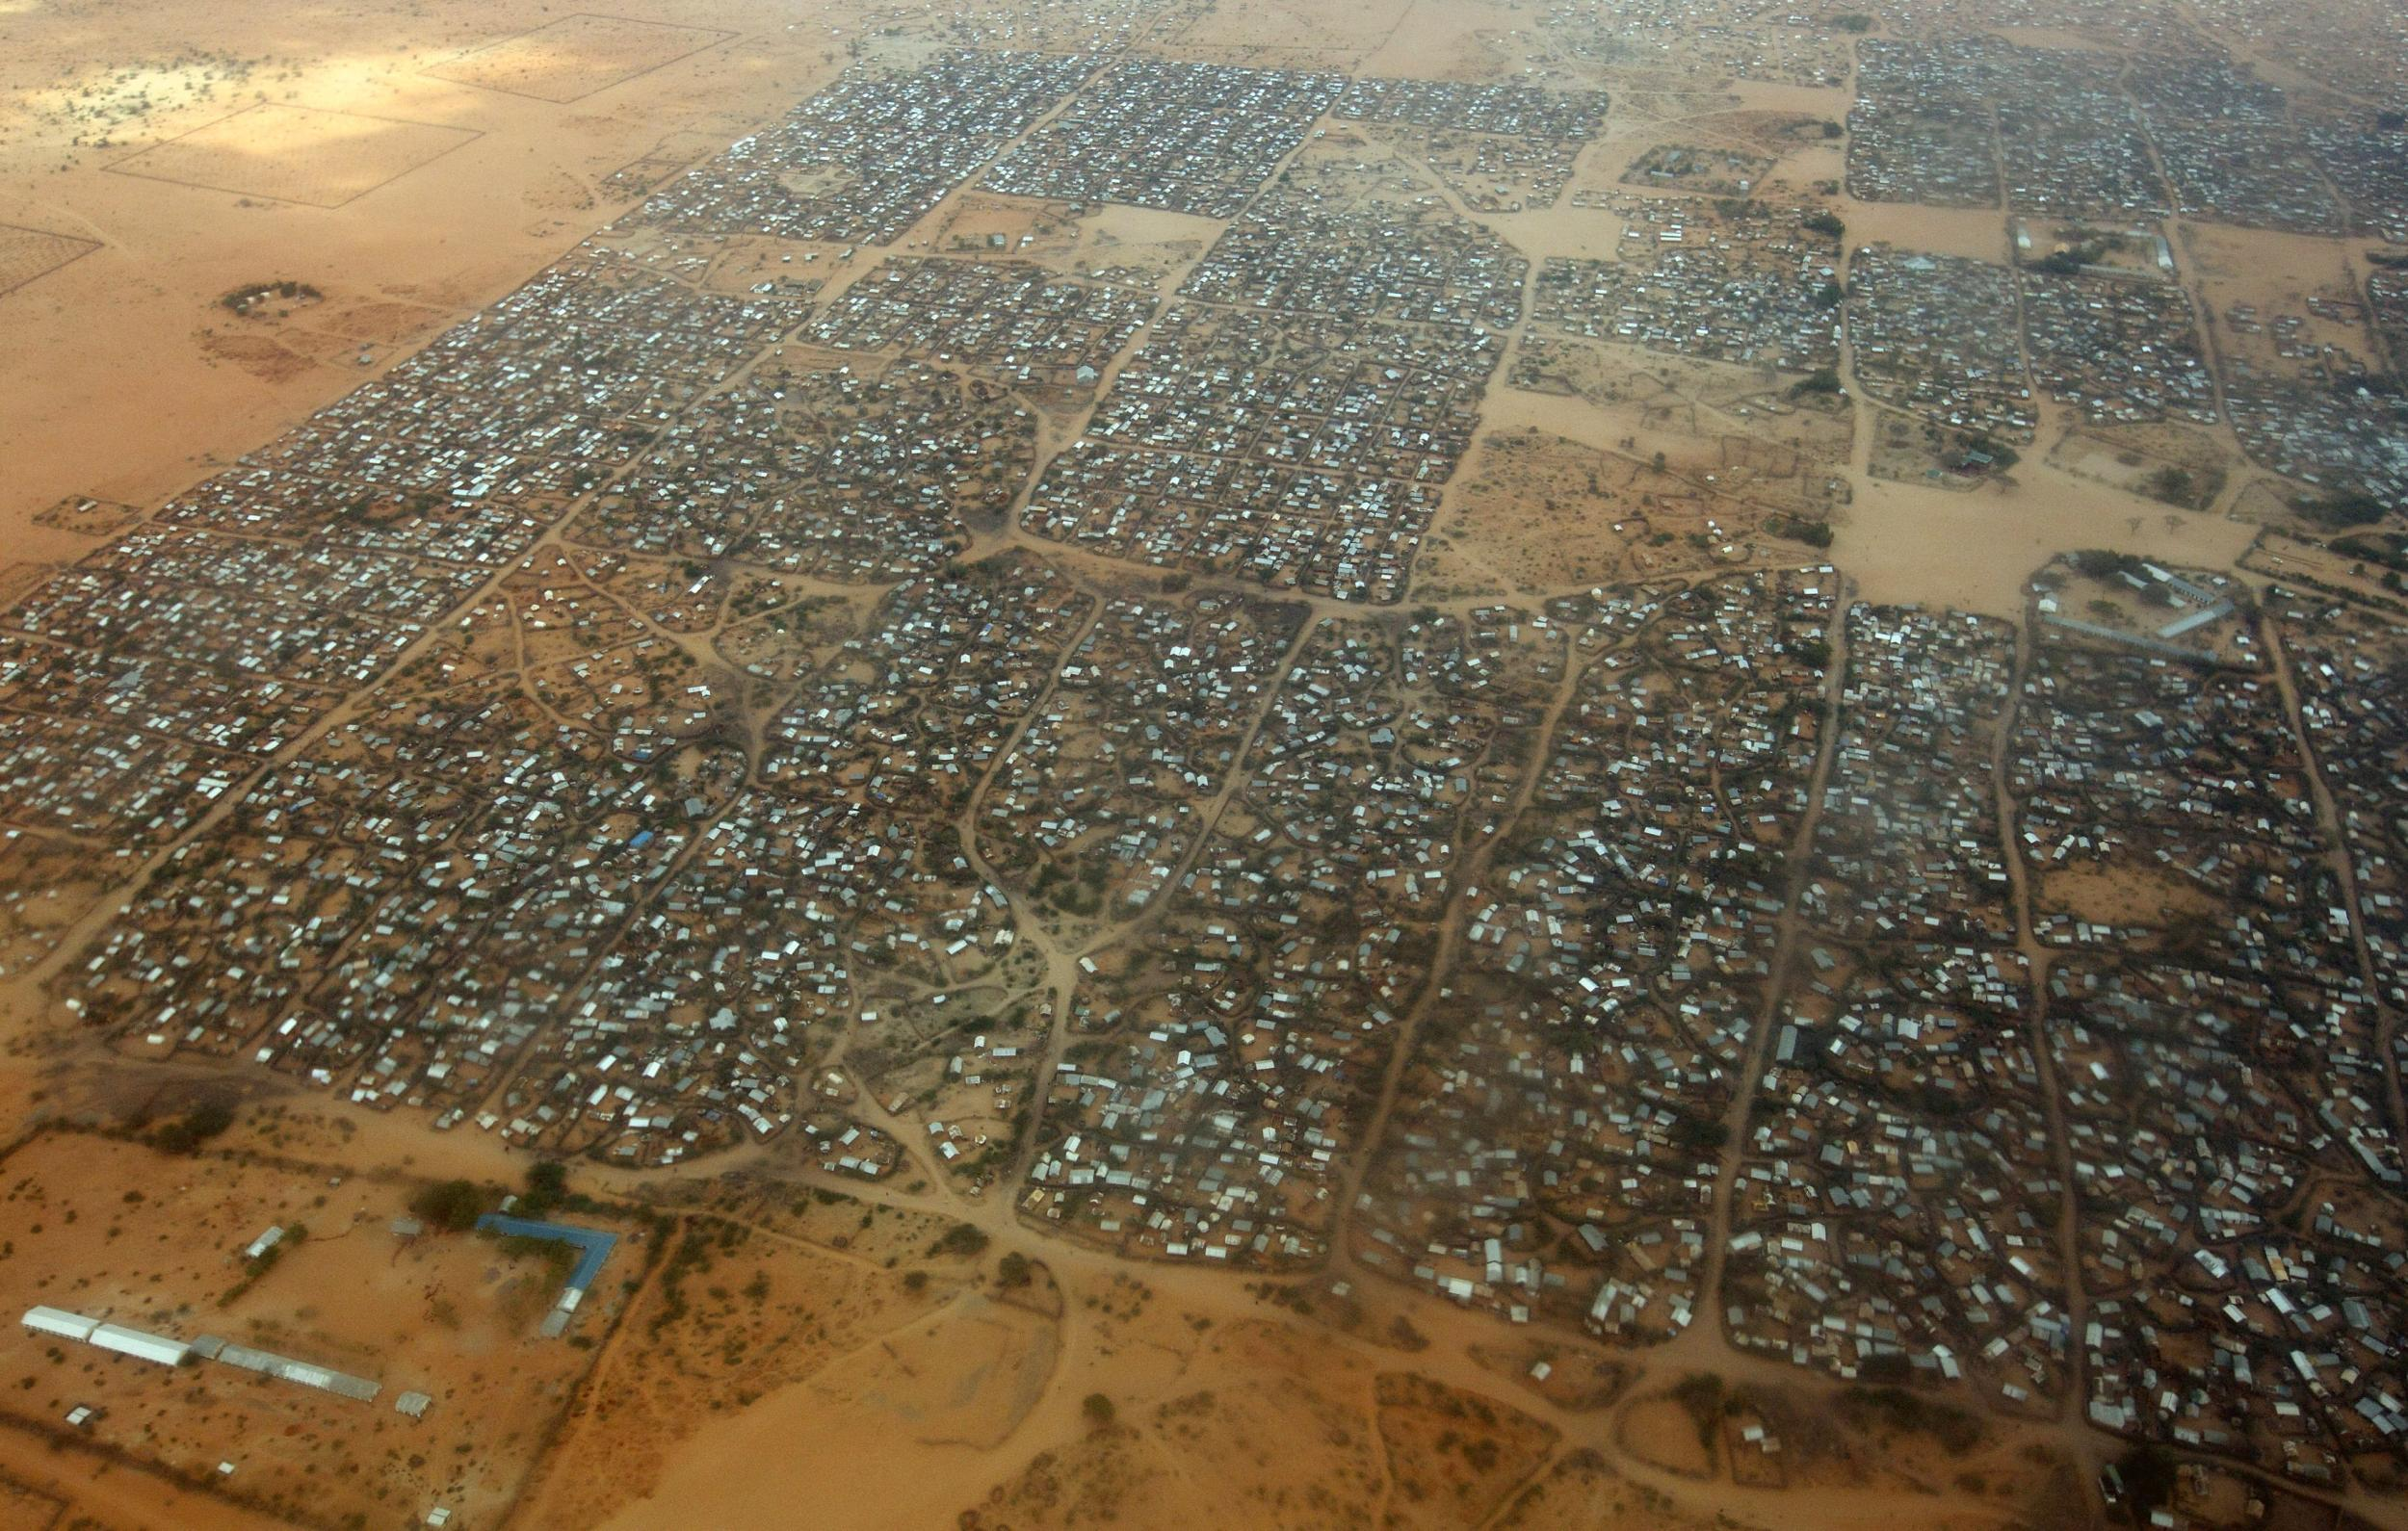 Kenya to close all refugee camps and displace 600,000 ...